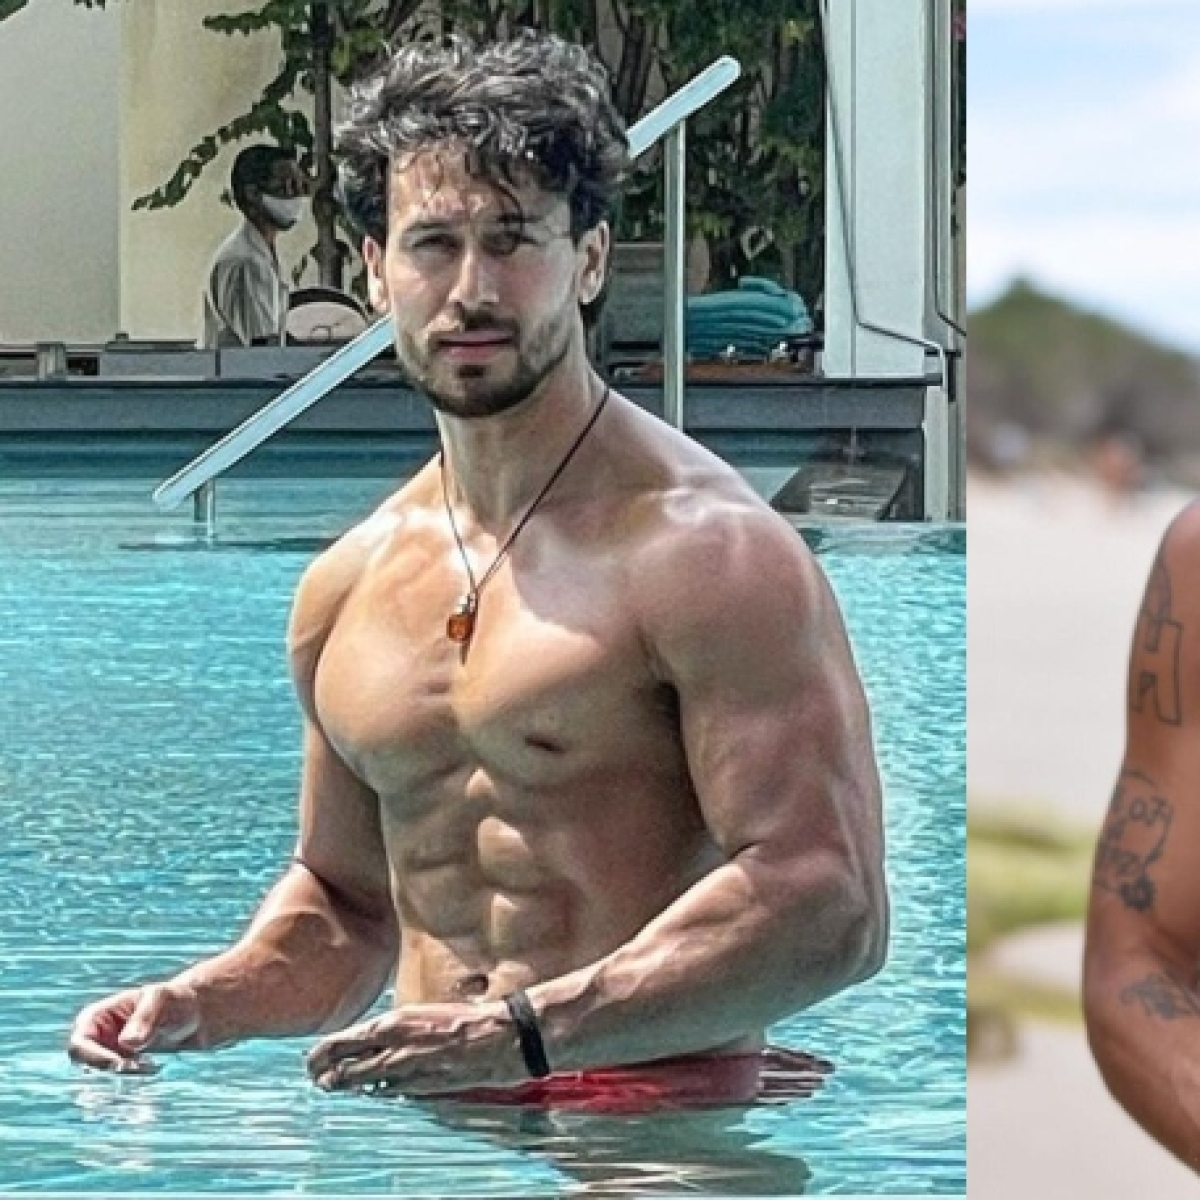 Tiger Shroff flaunts washboard abs in pool pic; check out his sister Krishna Shroff's ex-boyfriend's comment